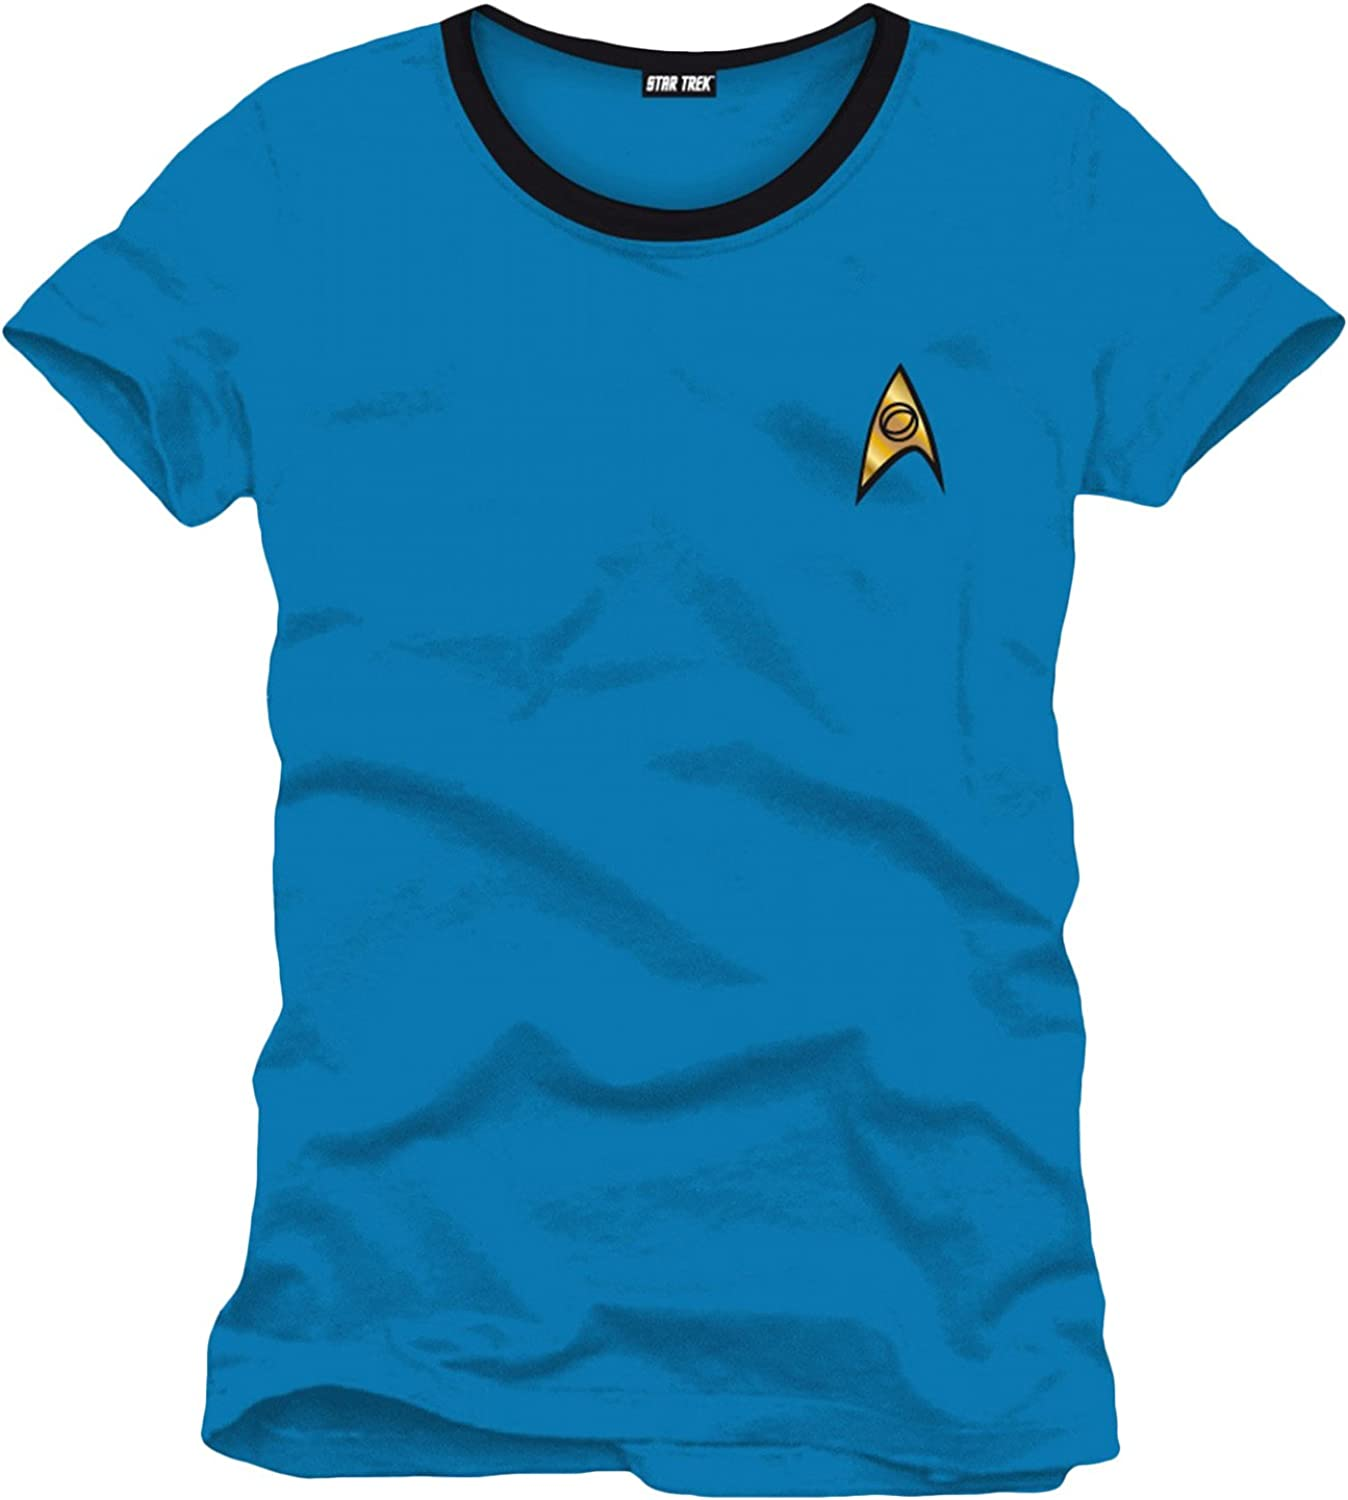 Star Trek – Camiseta de Mr. Spock de Uniforme – Azul: Amazon.es ...